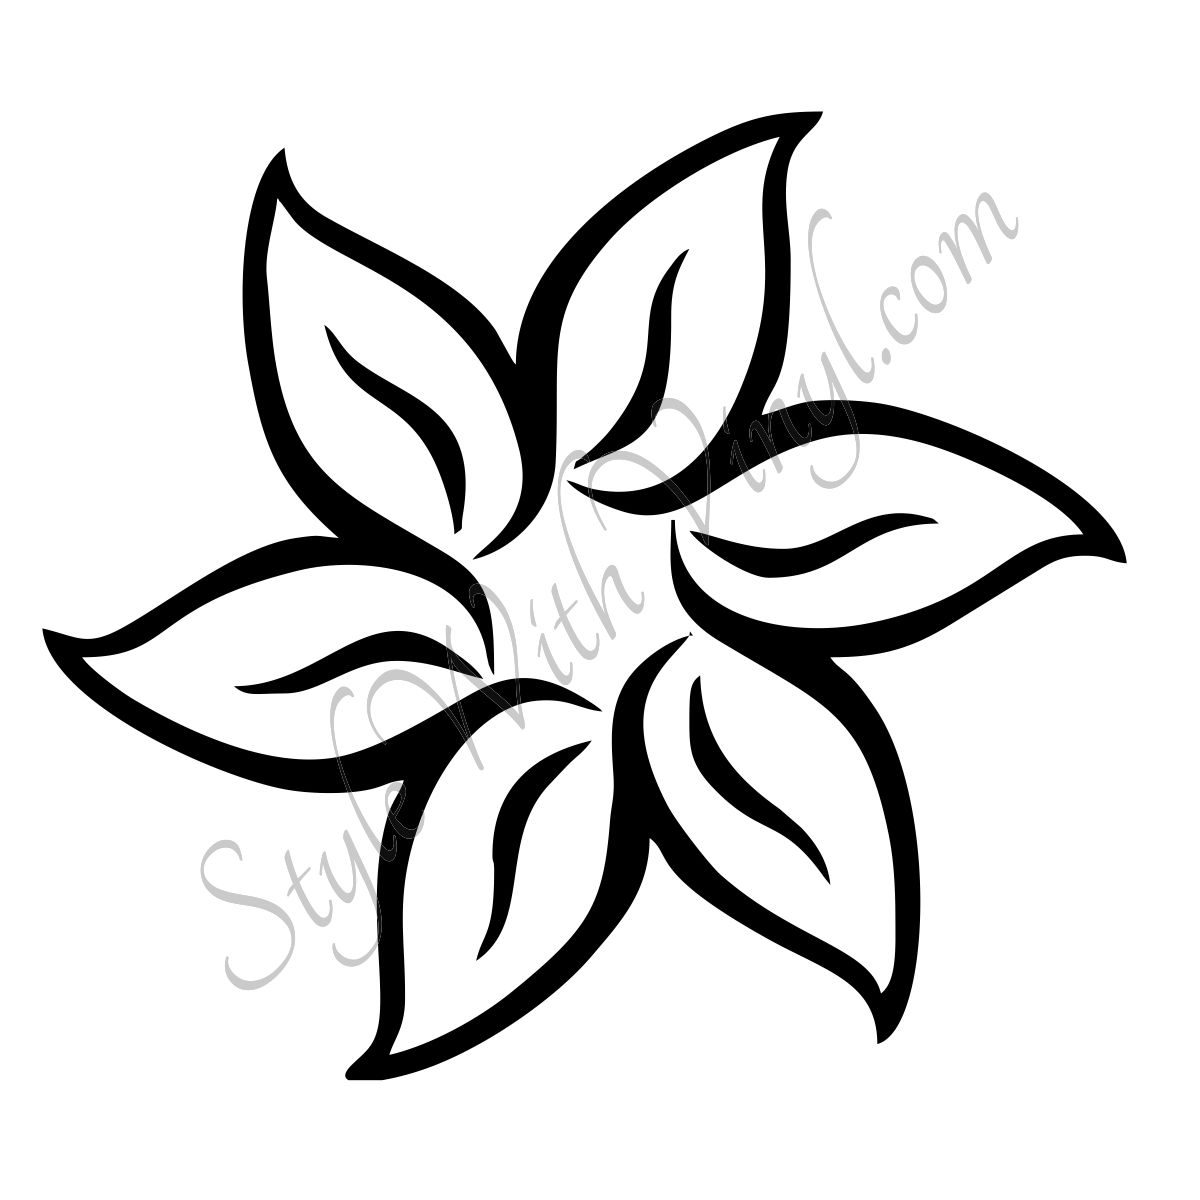 Uncategorized Basic Flower Drawing draw easy flower drawings simple rose drawing pinterest drawings